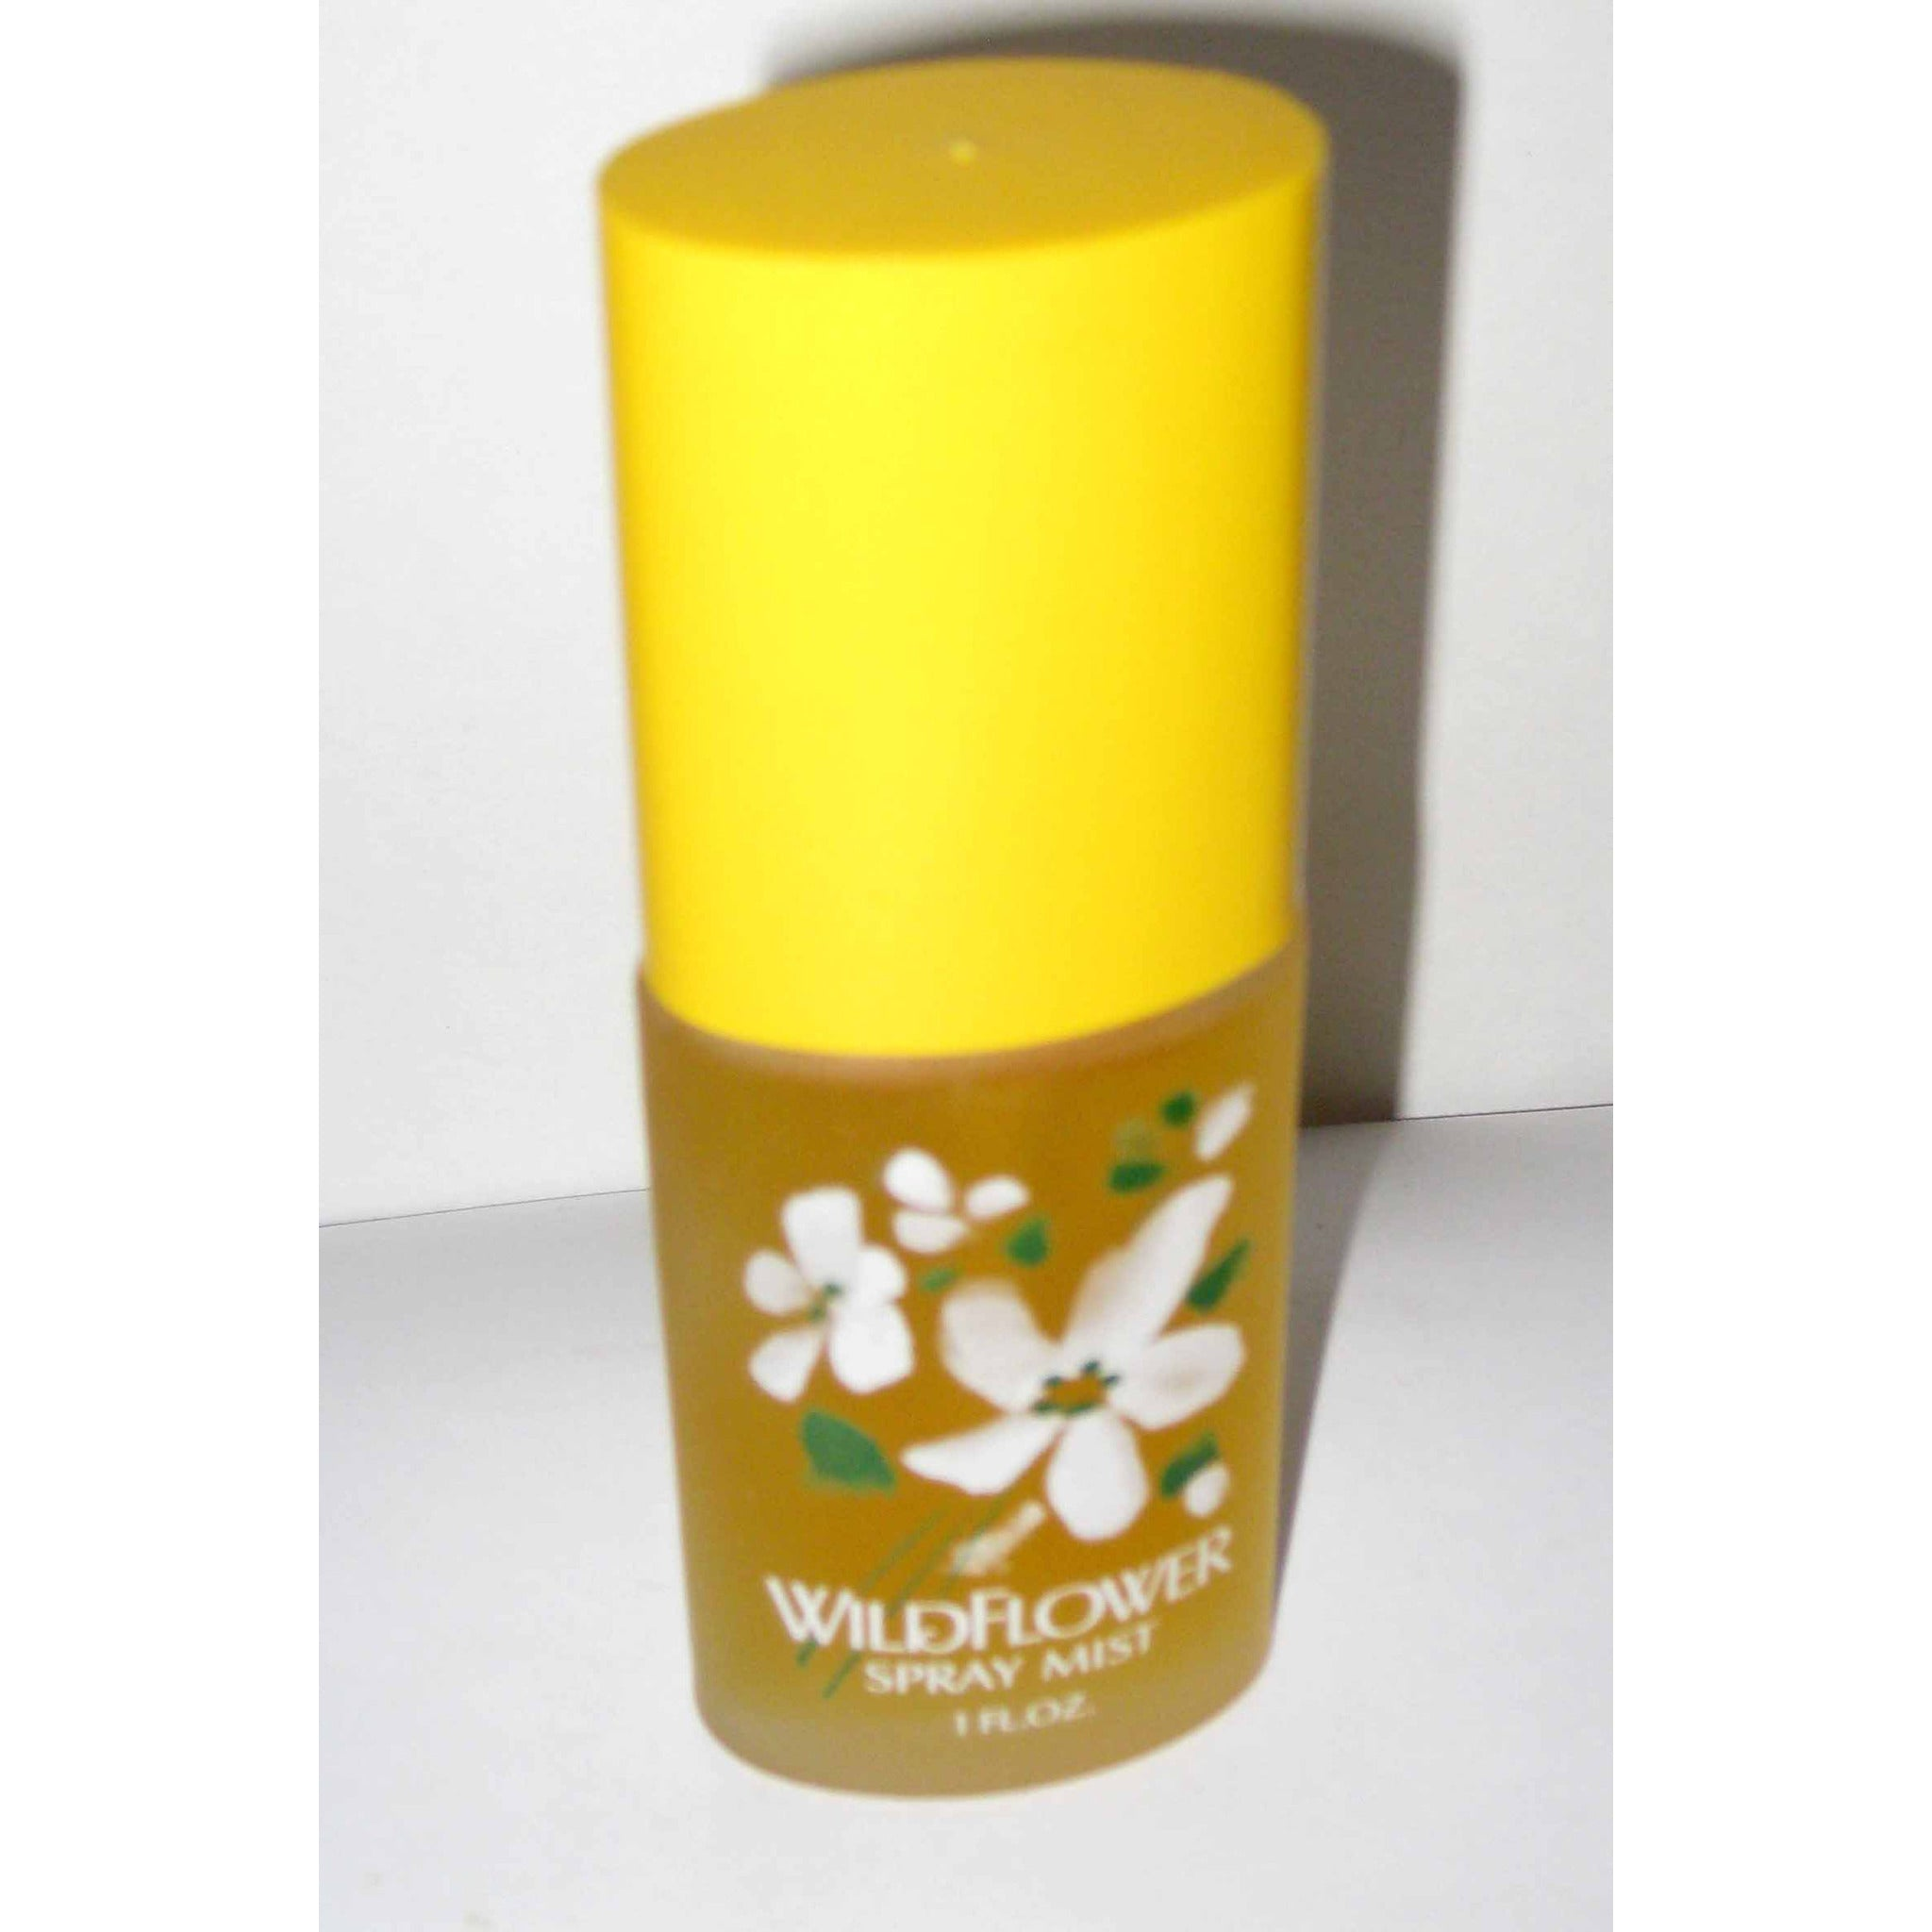 Vintage Alyssa Ashley Wild Flower Spray Mist